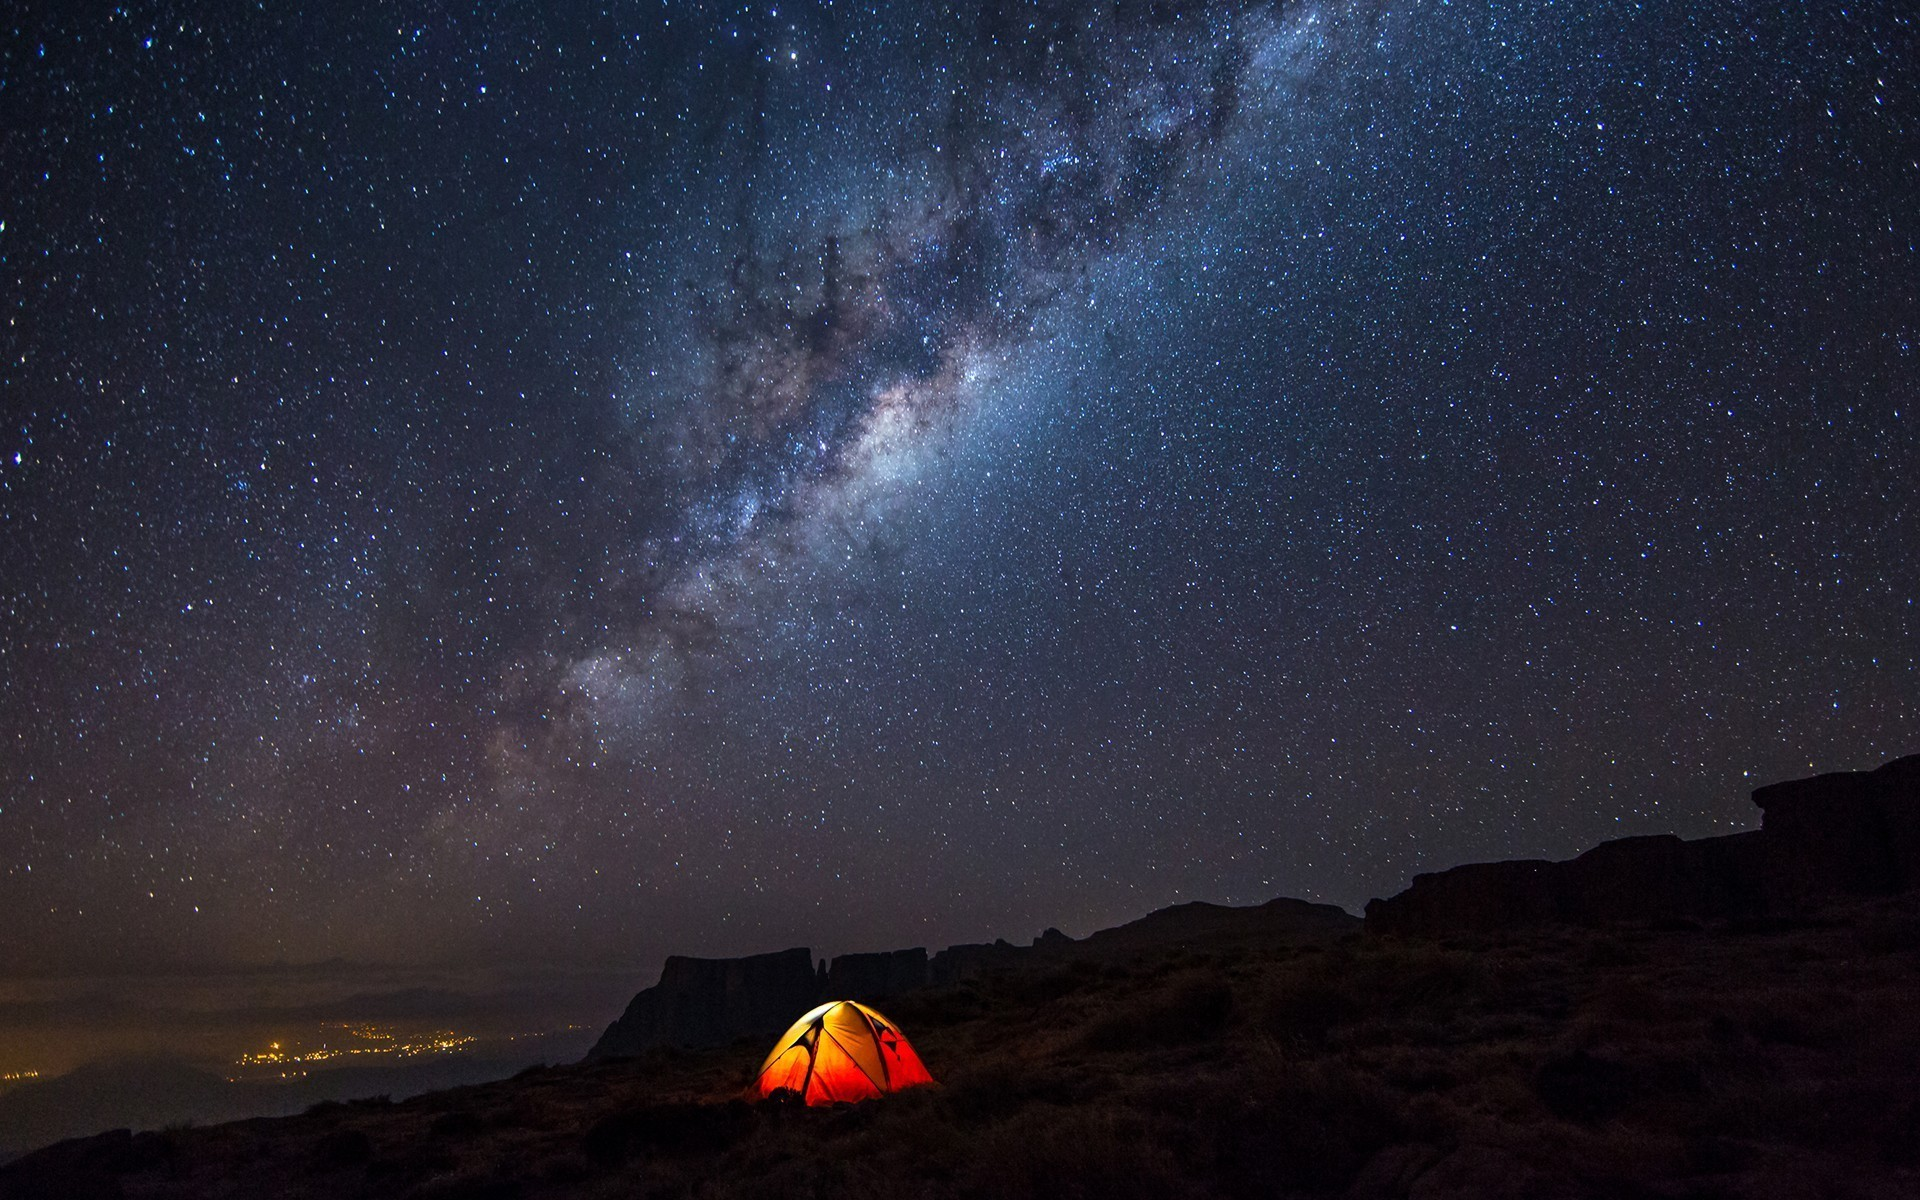 Night Camp Sky Stars wallpapers (50 Wallpapers)